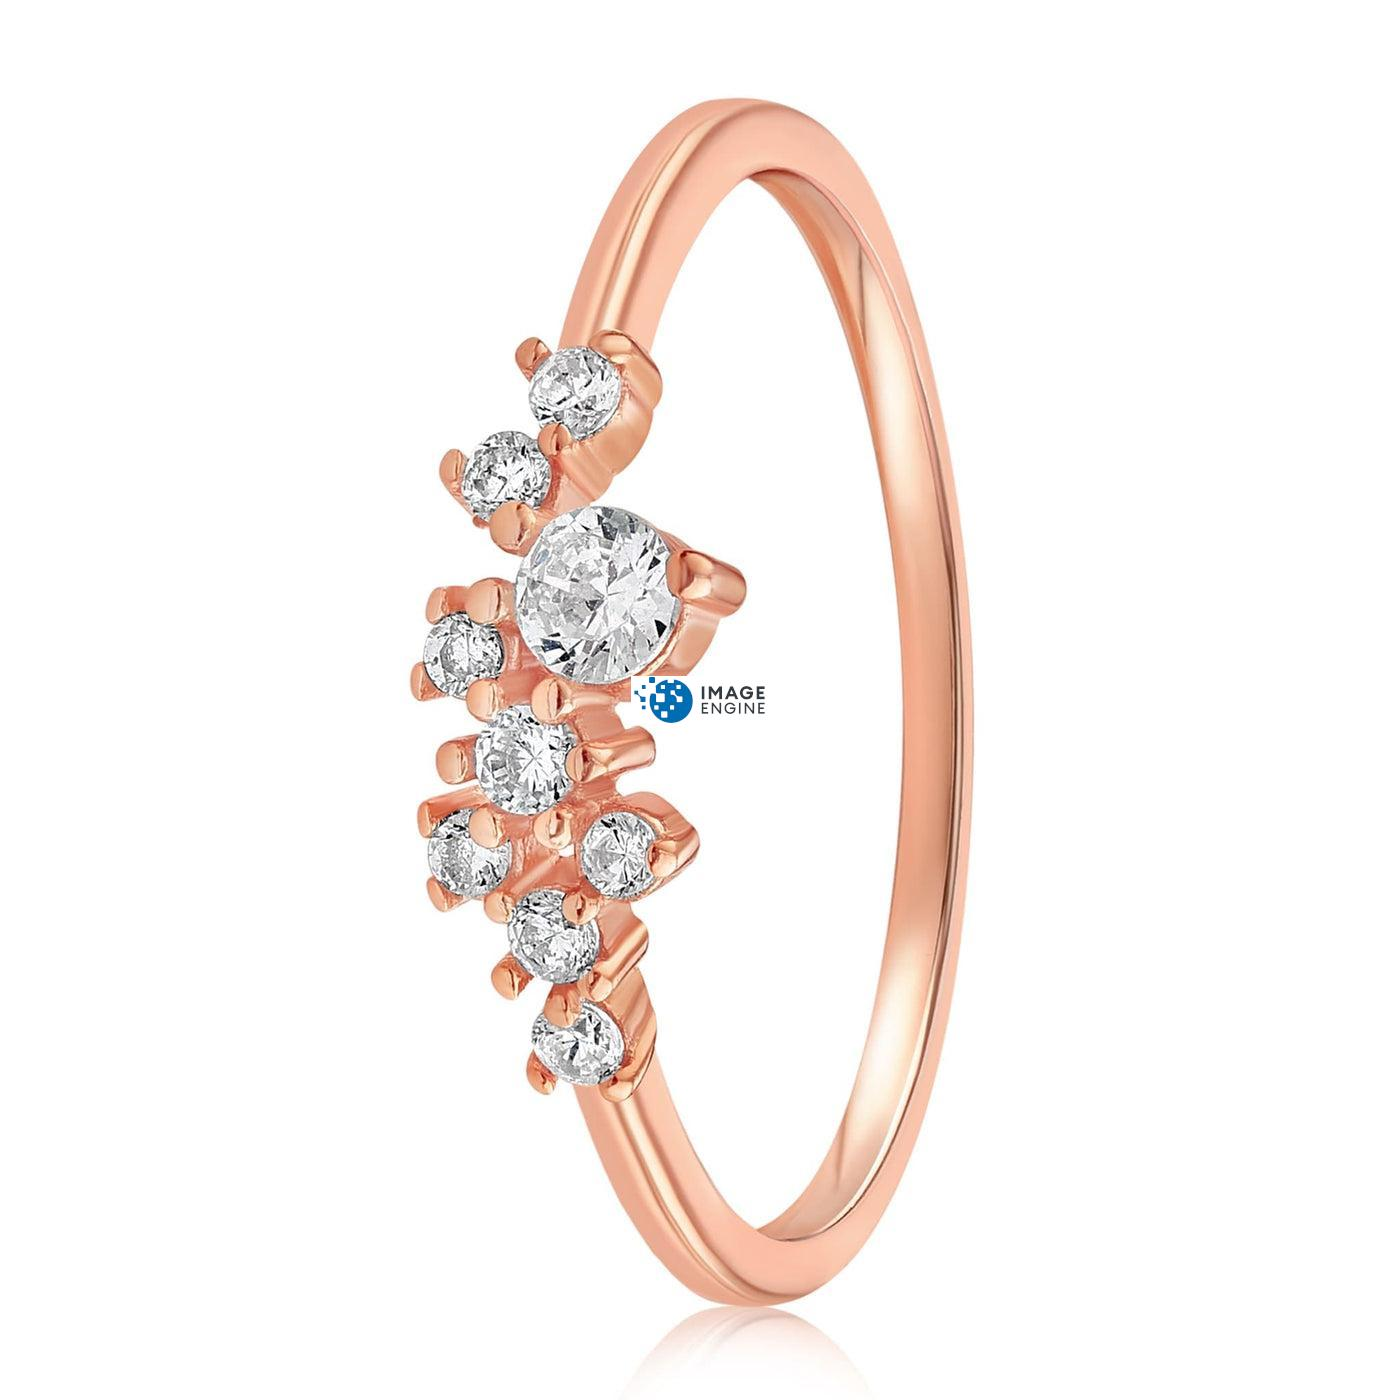 Sasha Sparkle Ring - Side View - 18K Rose Gold Vermeil